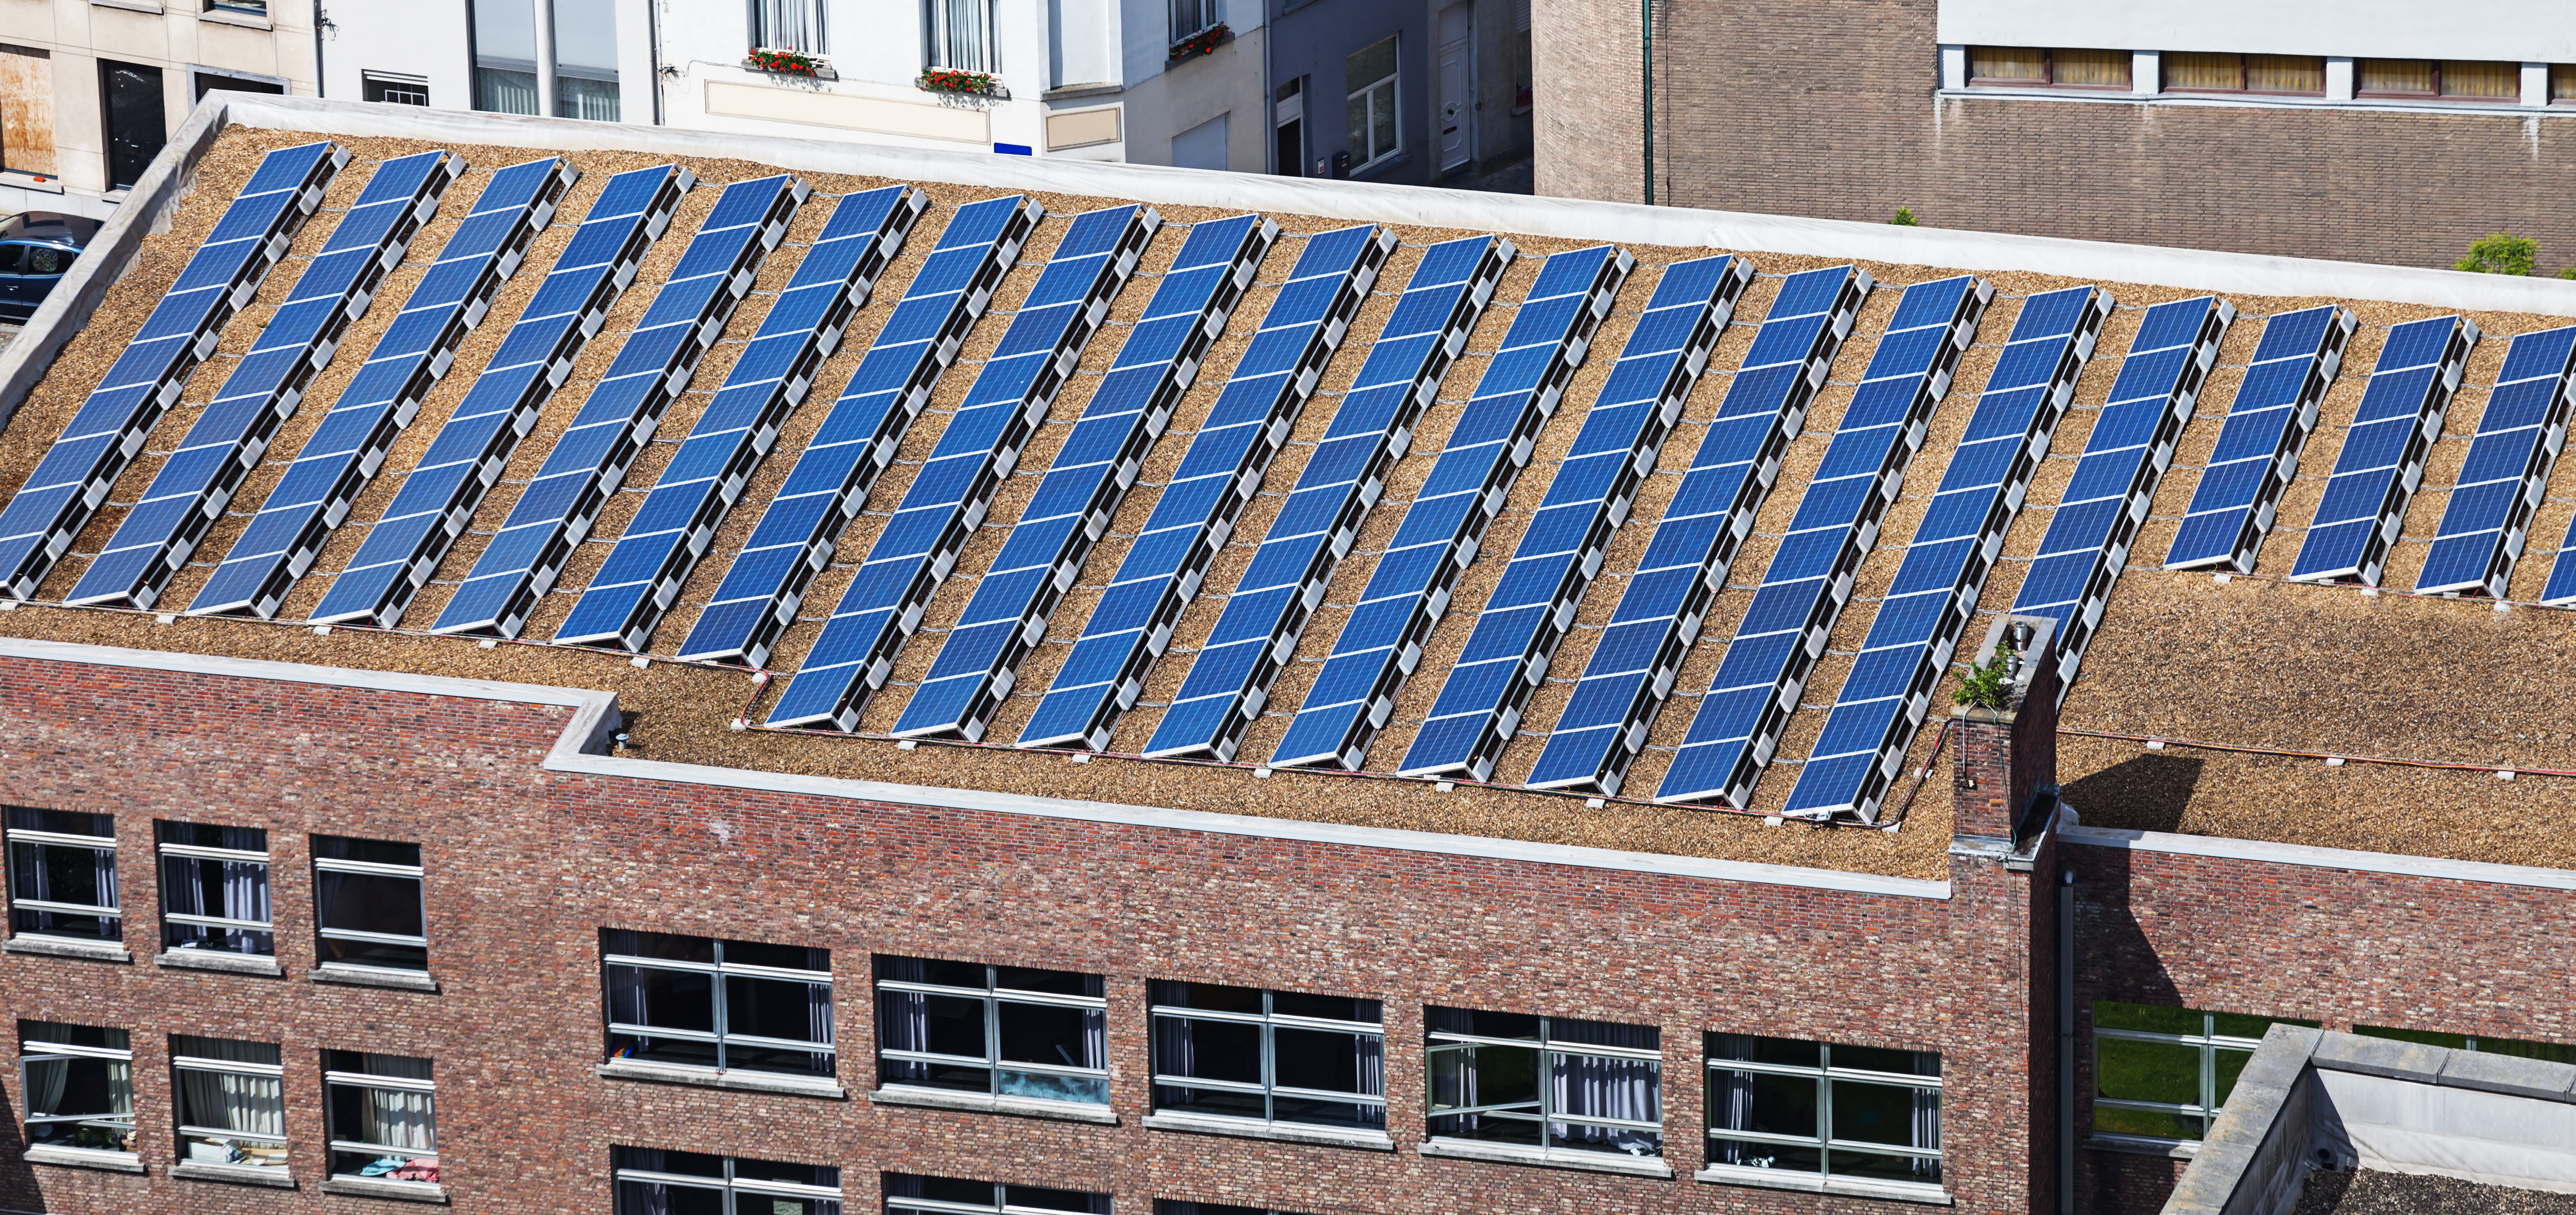 Location, Location, Location: Fighting Climate Change with Smart Siting for Renewable Energy